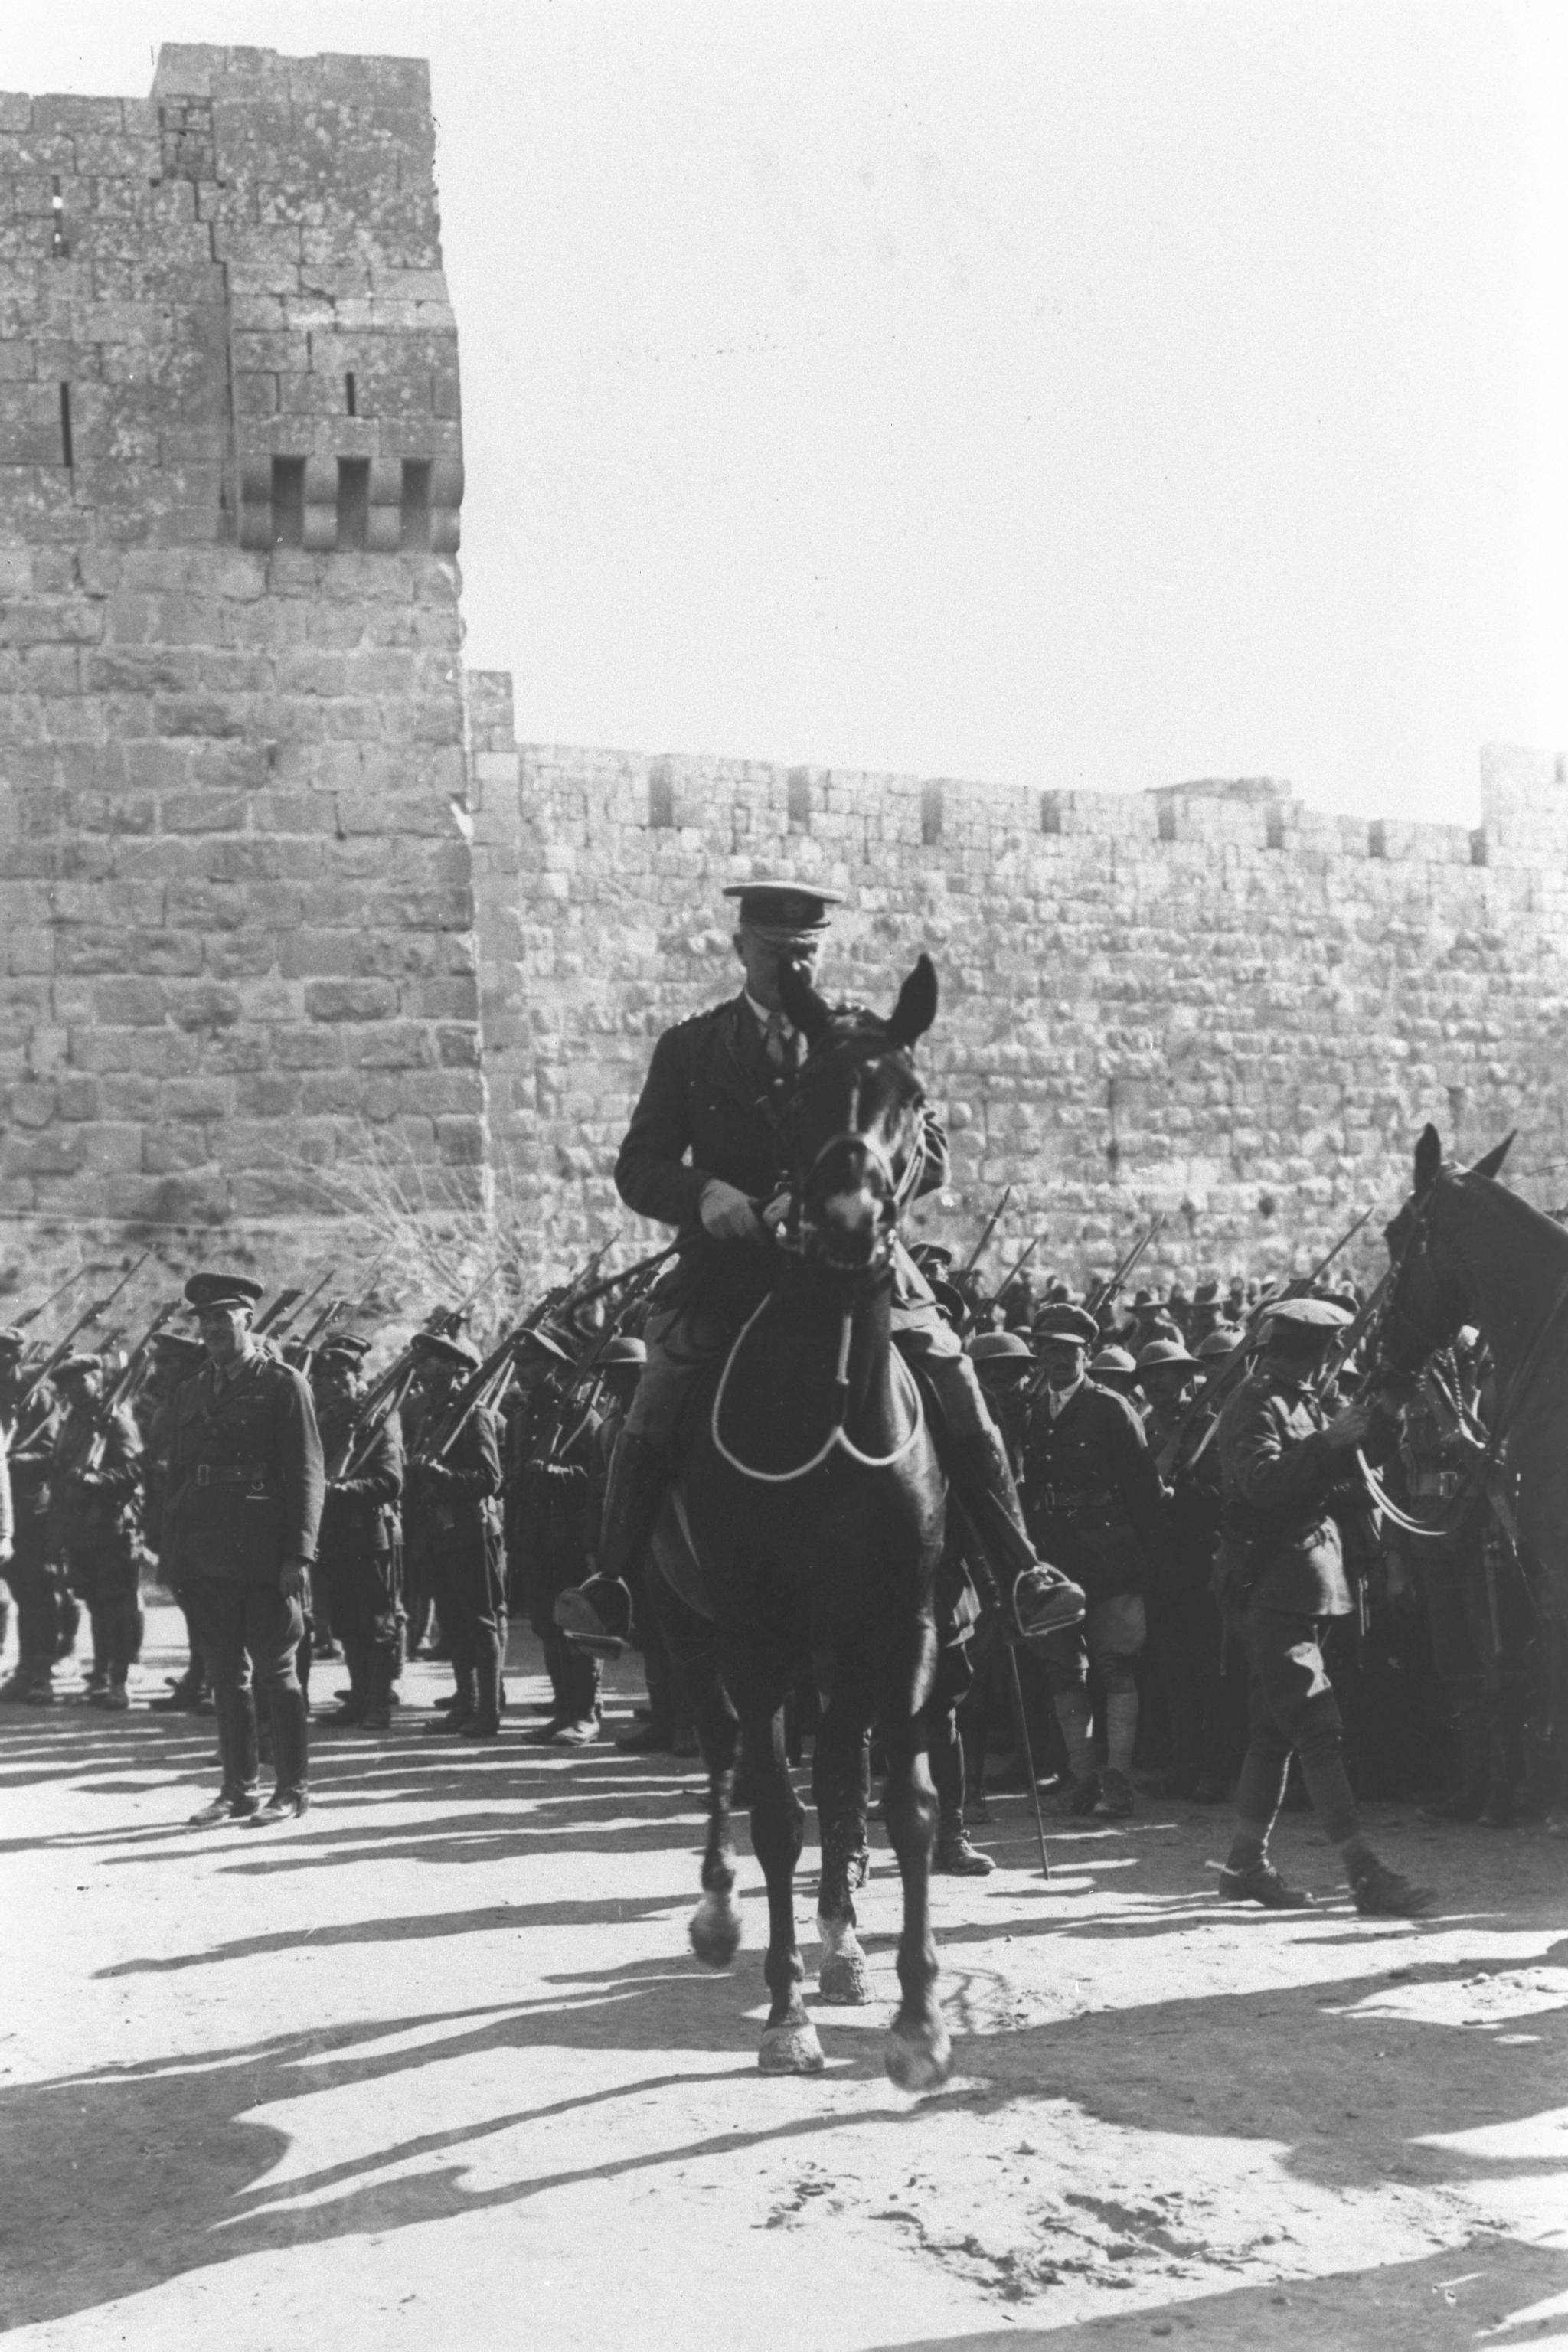 gen._edmund_hynman_allenby2c_the_commander_of_british_forces_in_palestine_during_world_war_i2c_riding_his_horse_alongside_the_walls_of_the_old_city_of_j